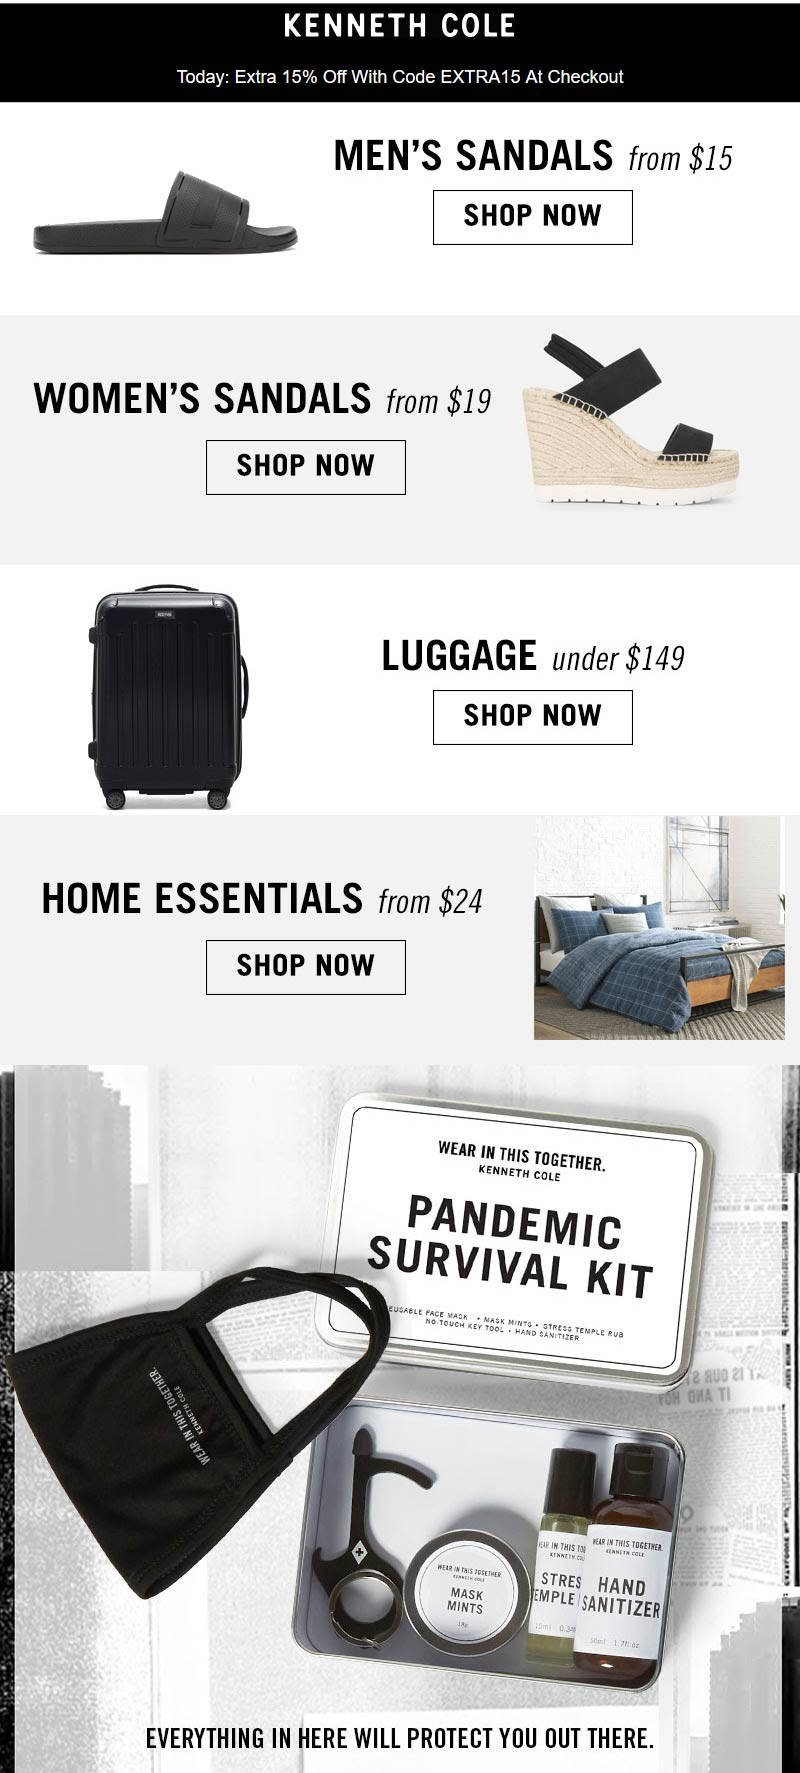 Kenneth Cole coupons & promo code for [September 2020]